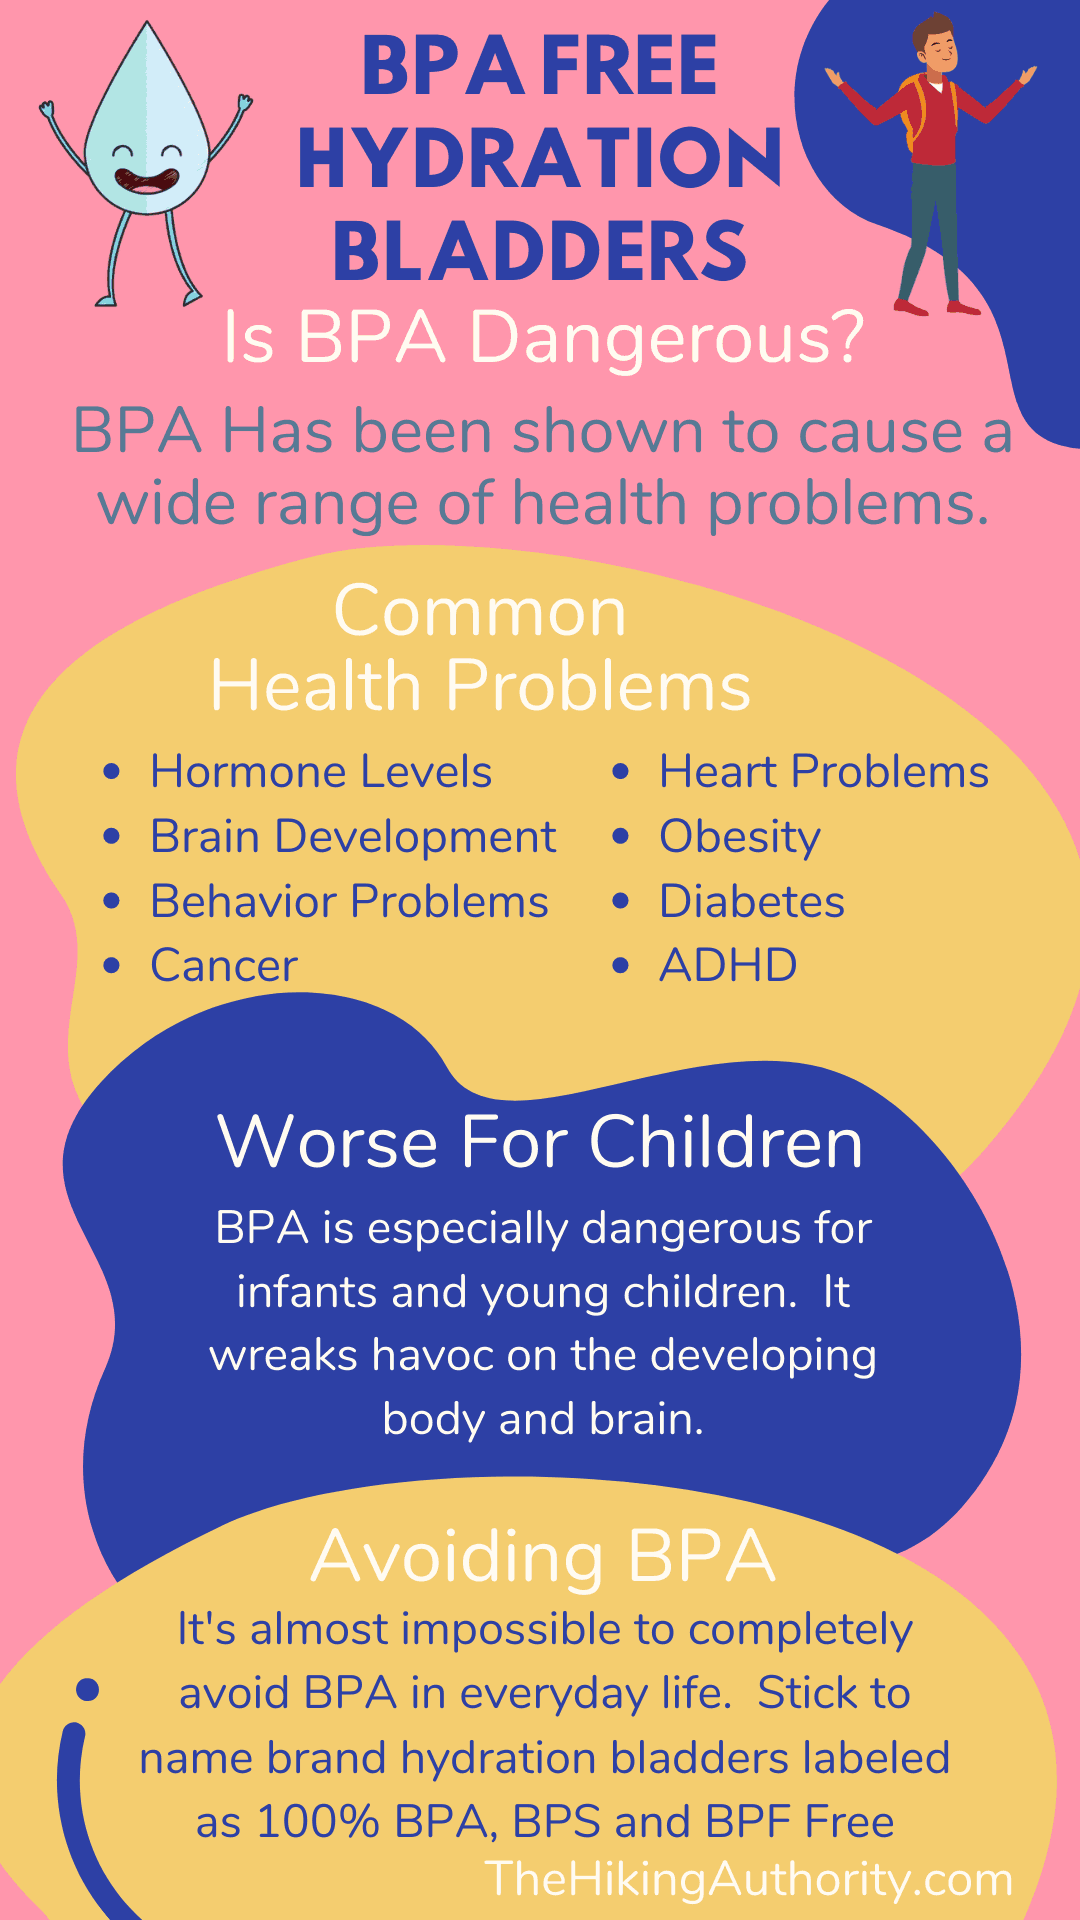 BPA Free Hydration Bladder infographic explaining dangers of BPA